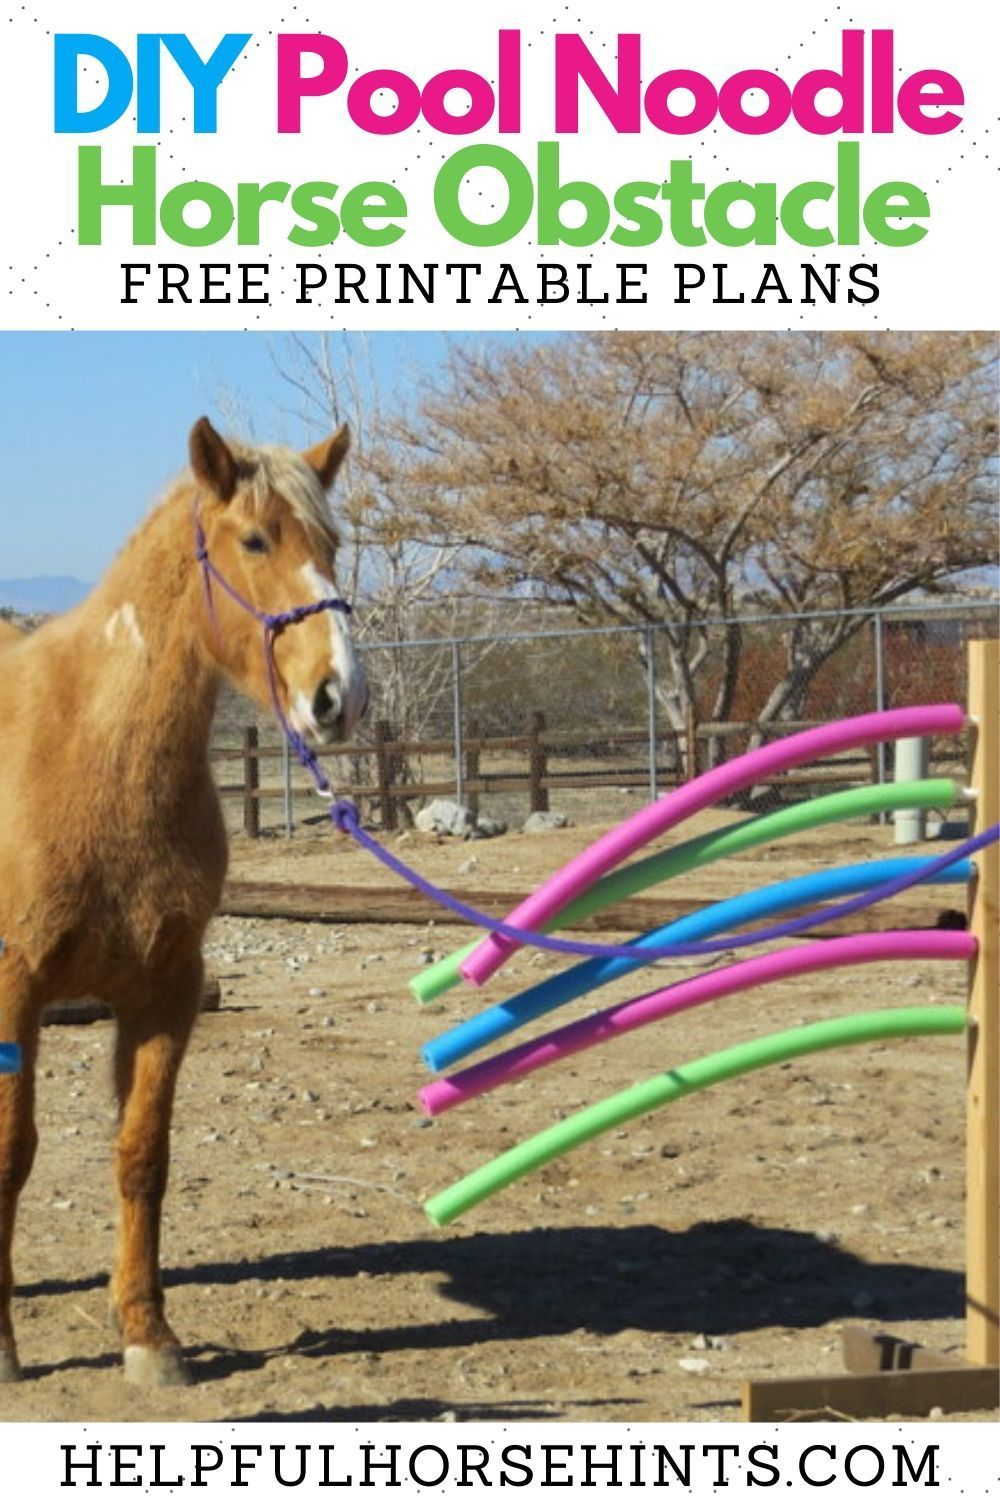 Diy pool noodle horse obstacle horses pool noodle horse